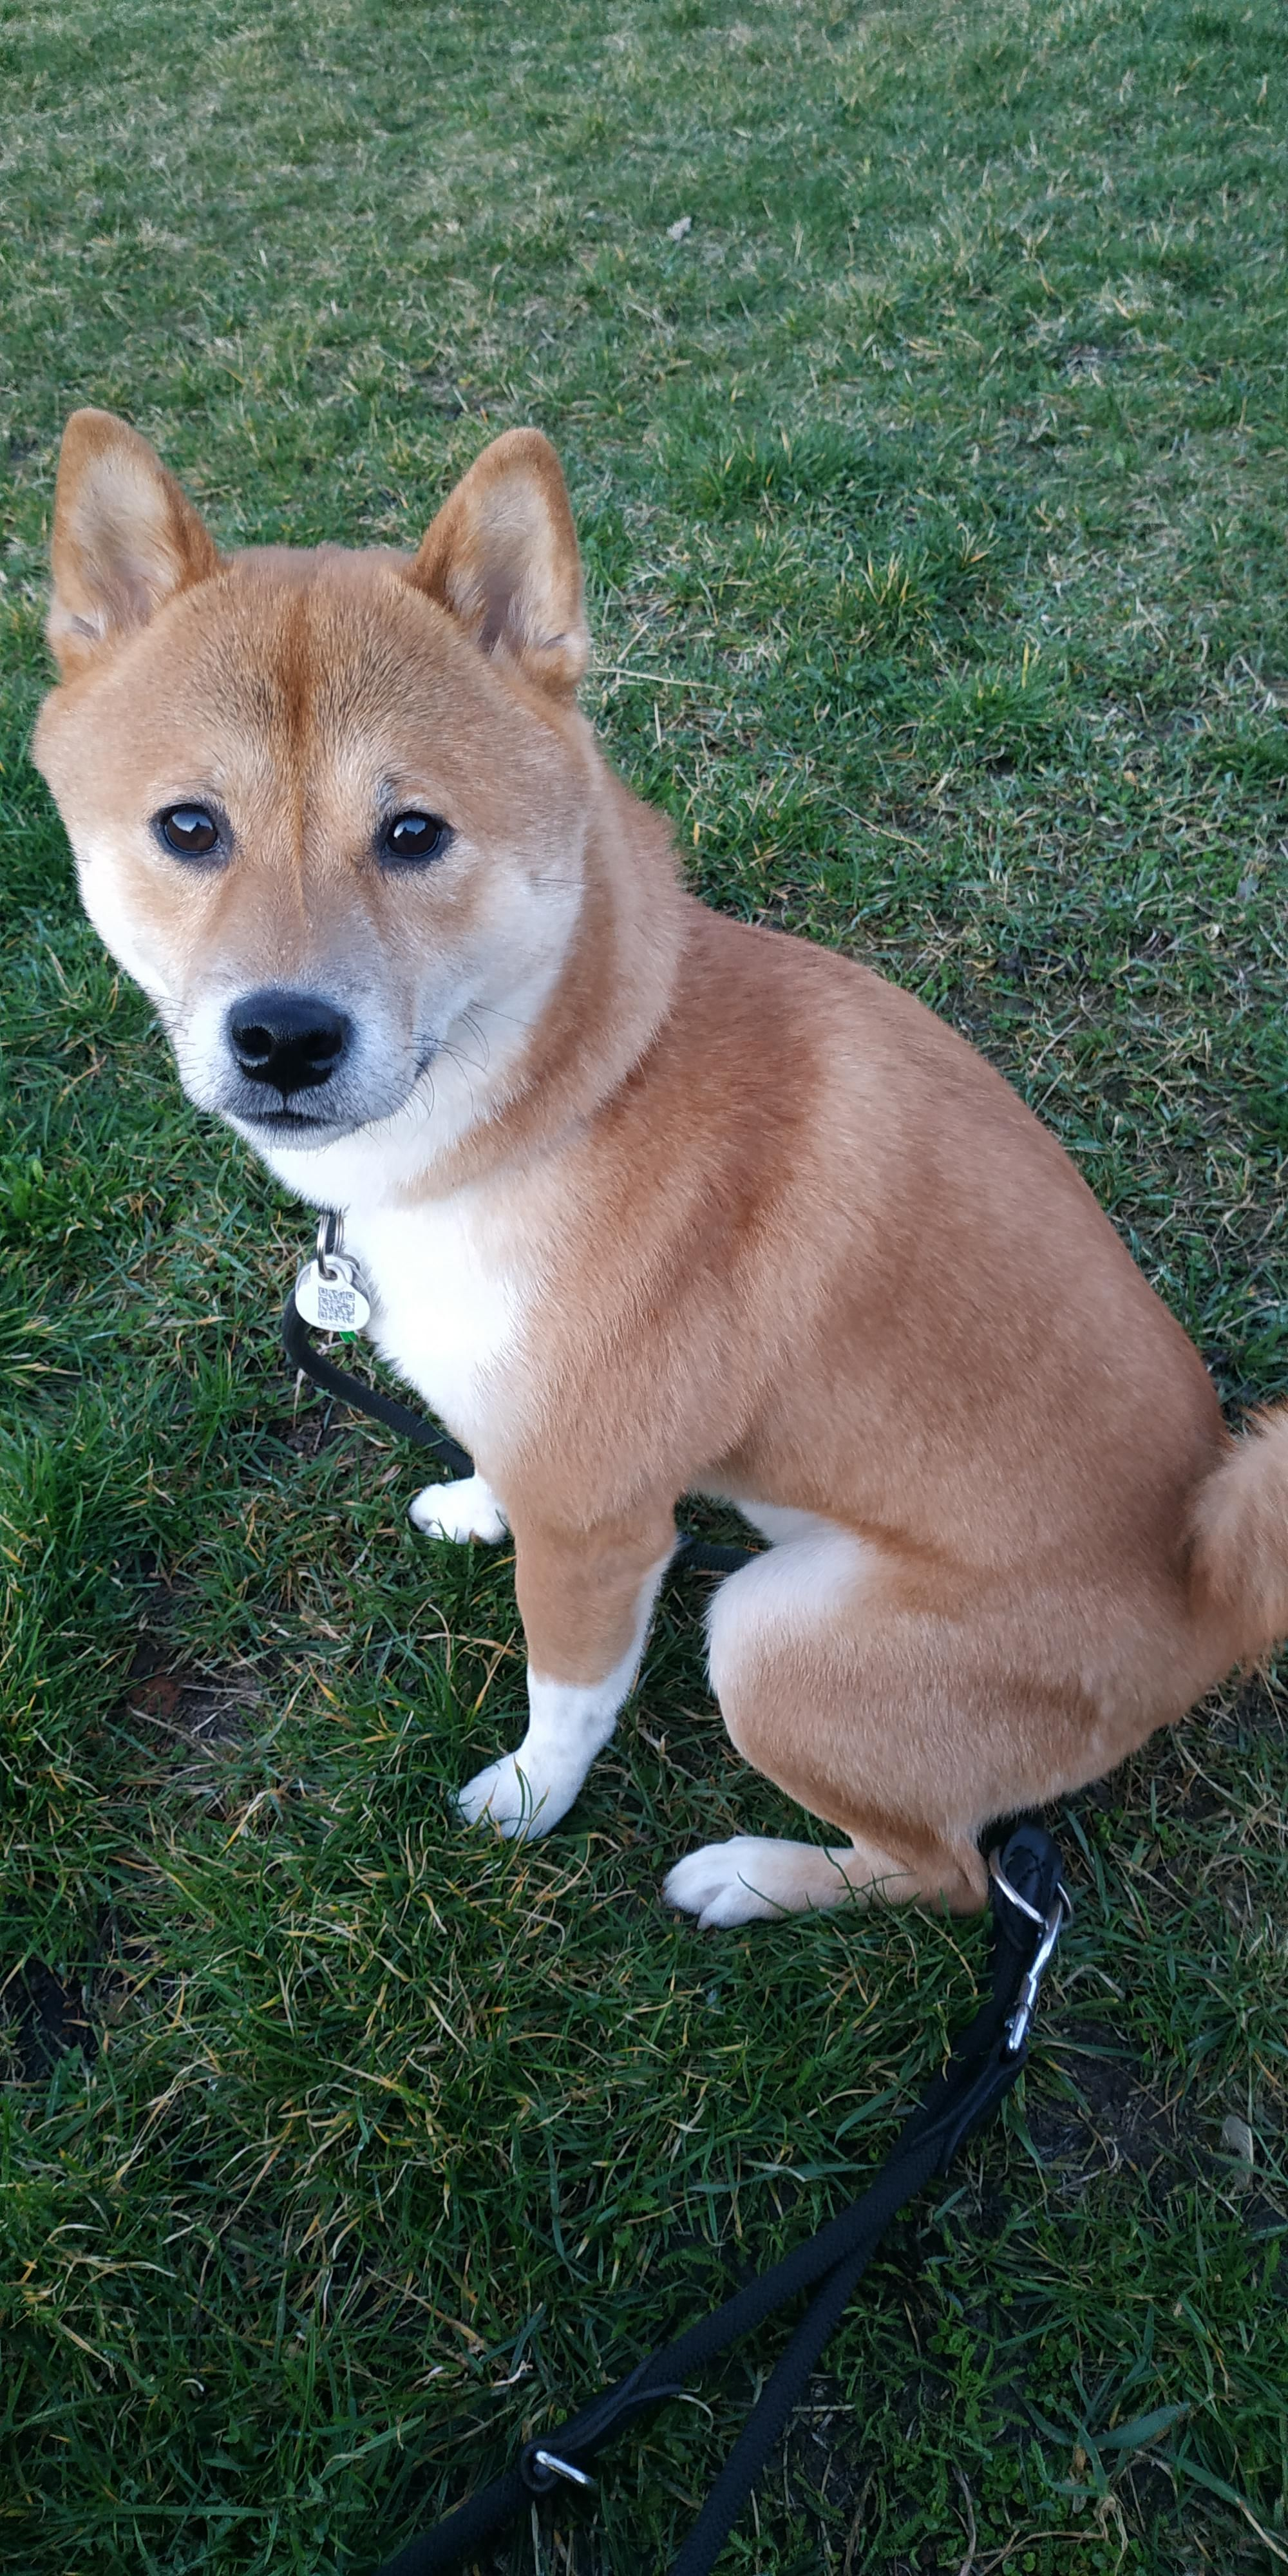 Today The Lucky Turned 2 Year Old Much Friday Very 13th Shibainu We 3 Shiba Inus 2020 柴犬 画像 動物 柴犬